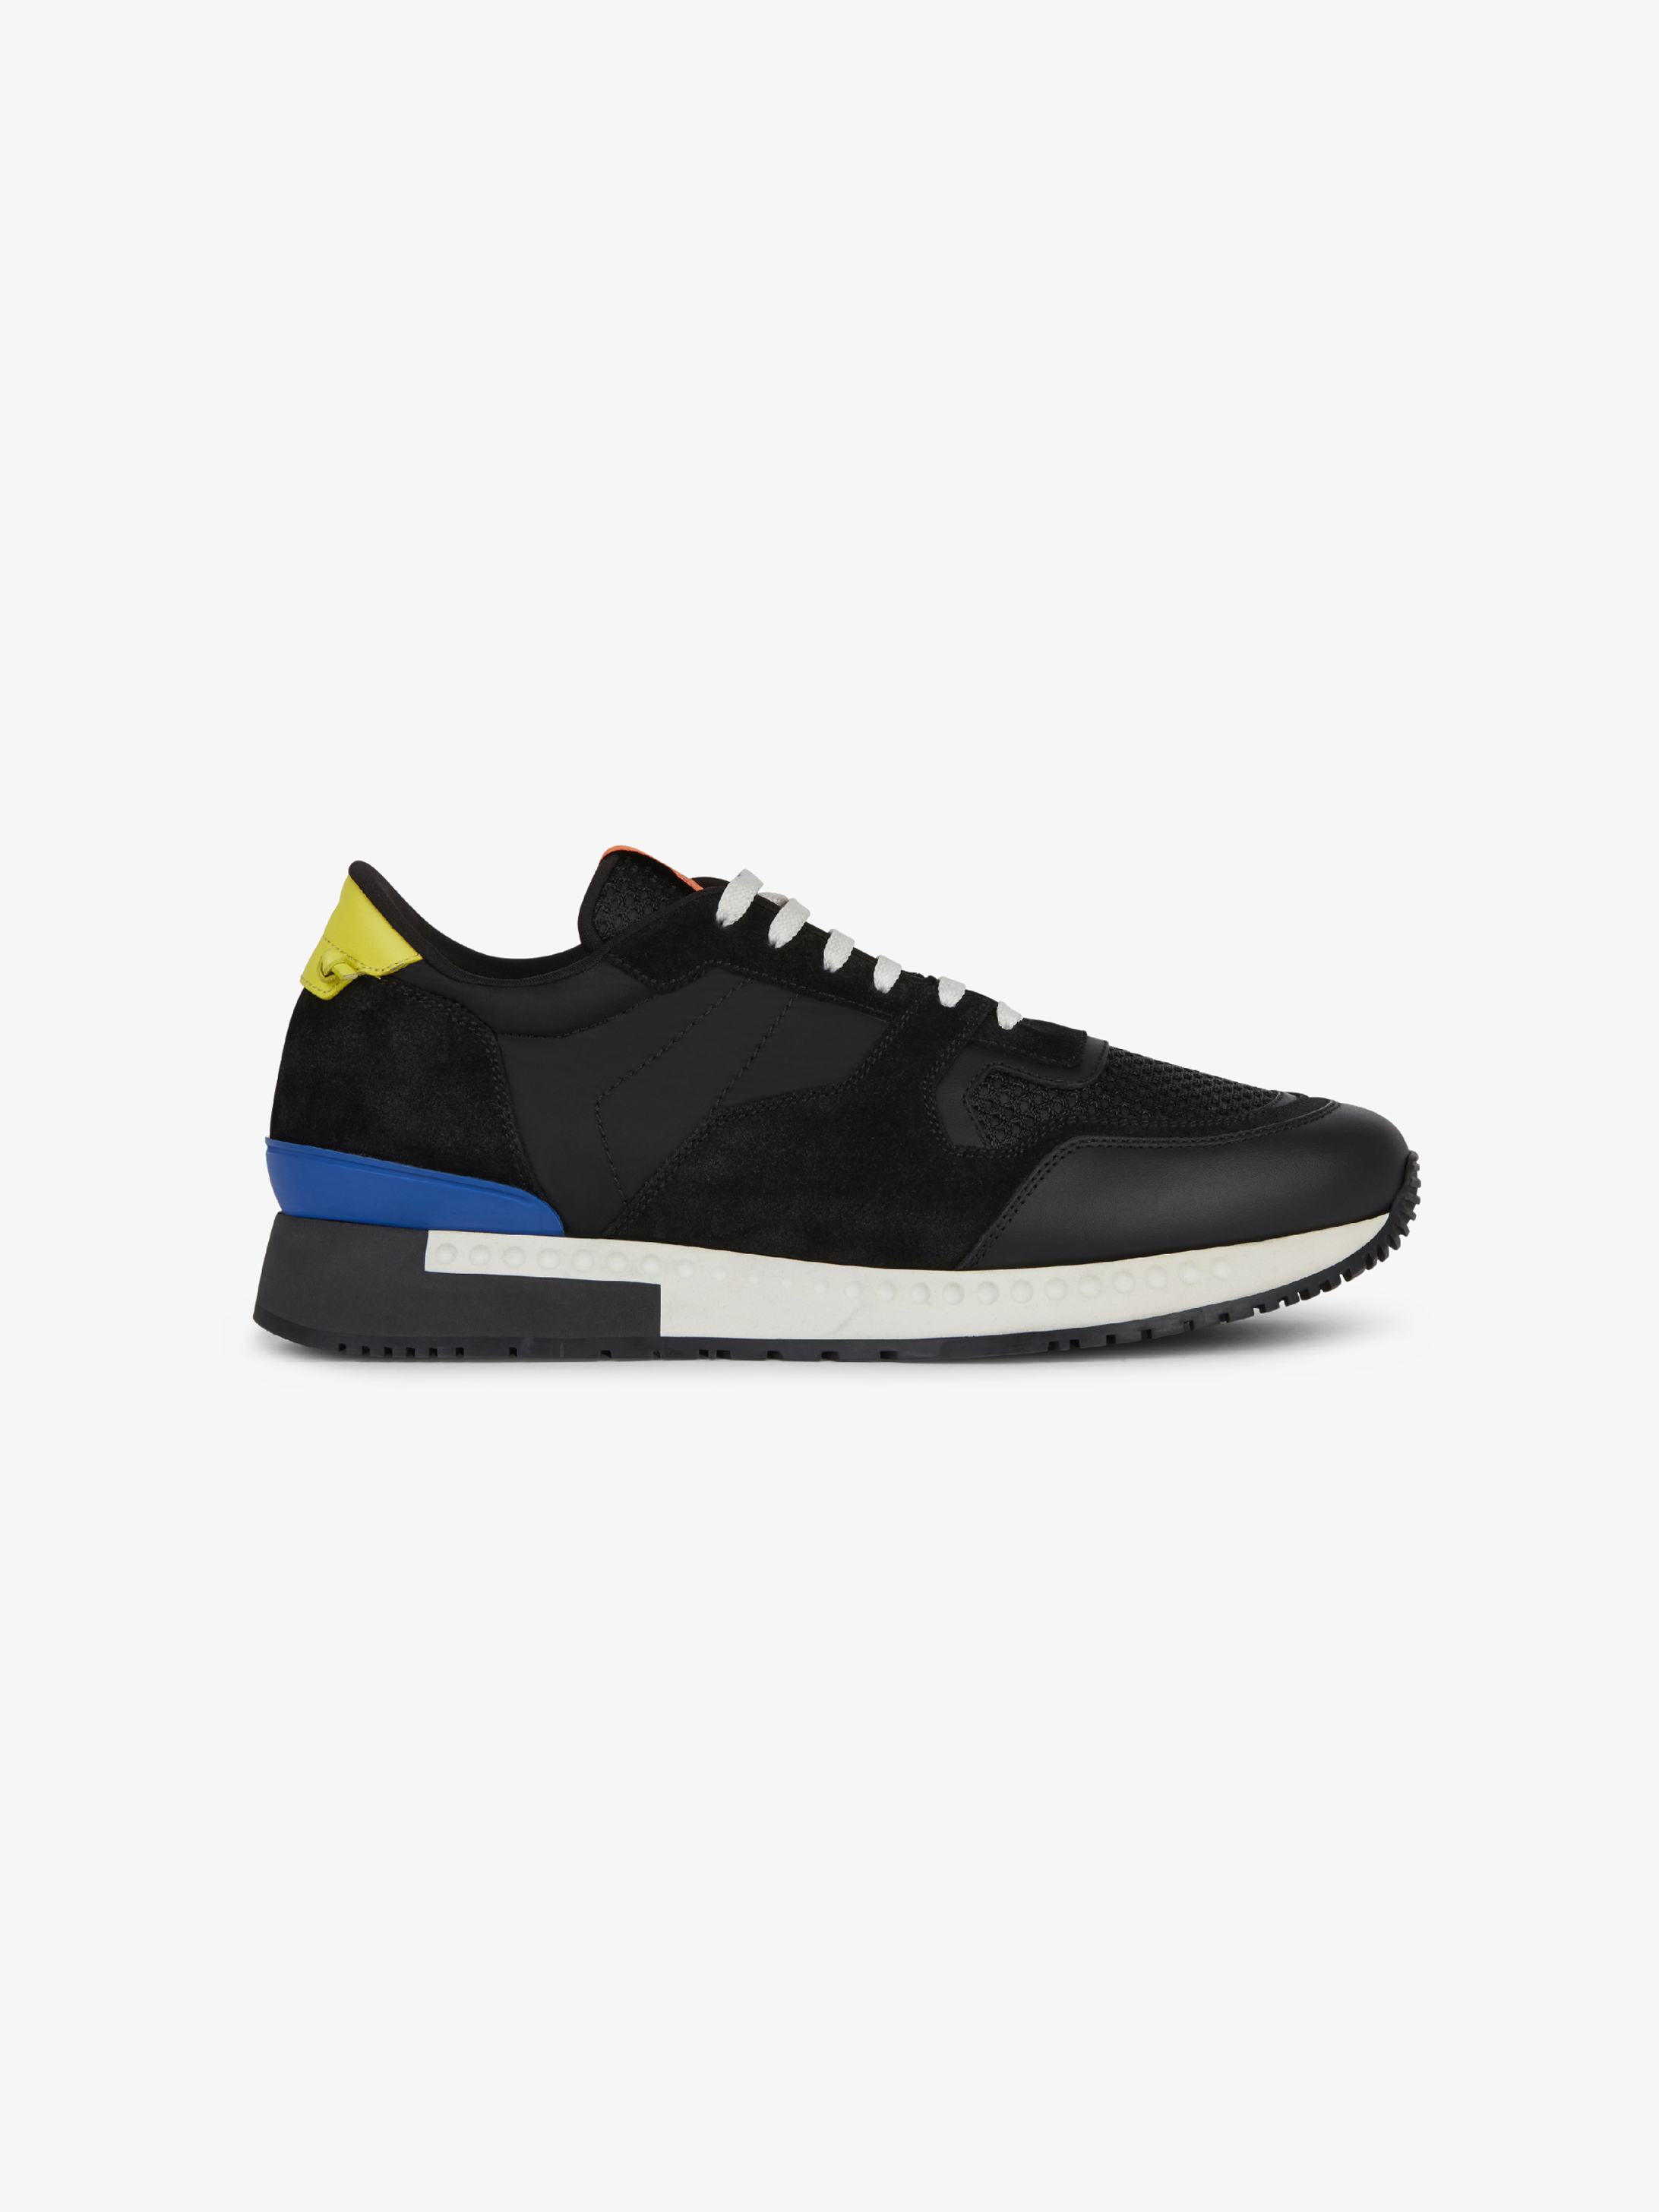 Runner sneakers in leather, suede and nylon